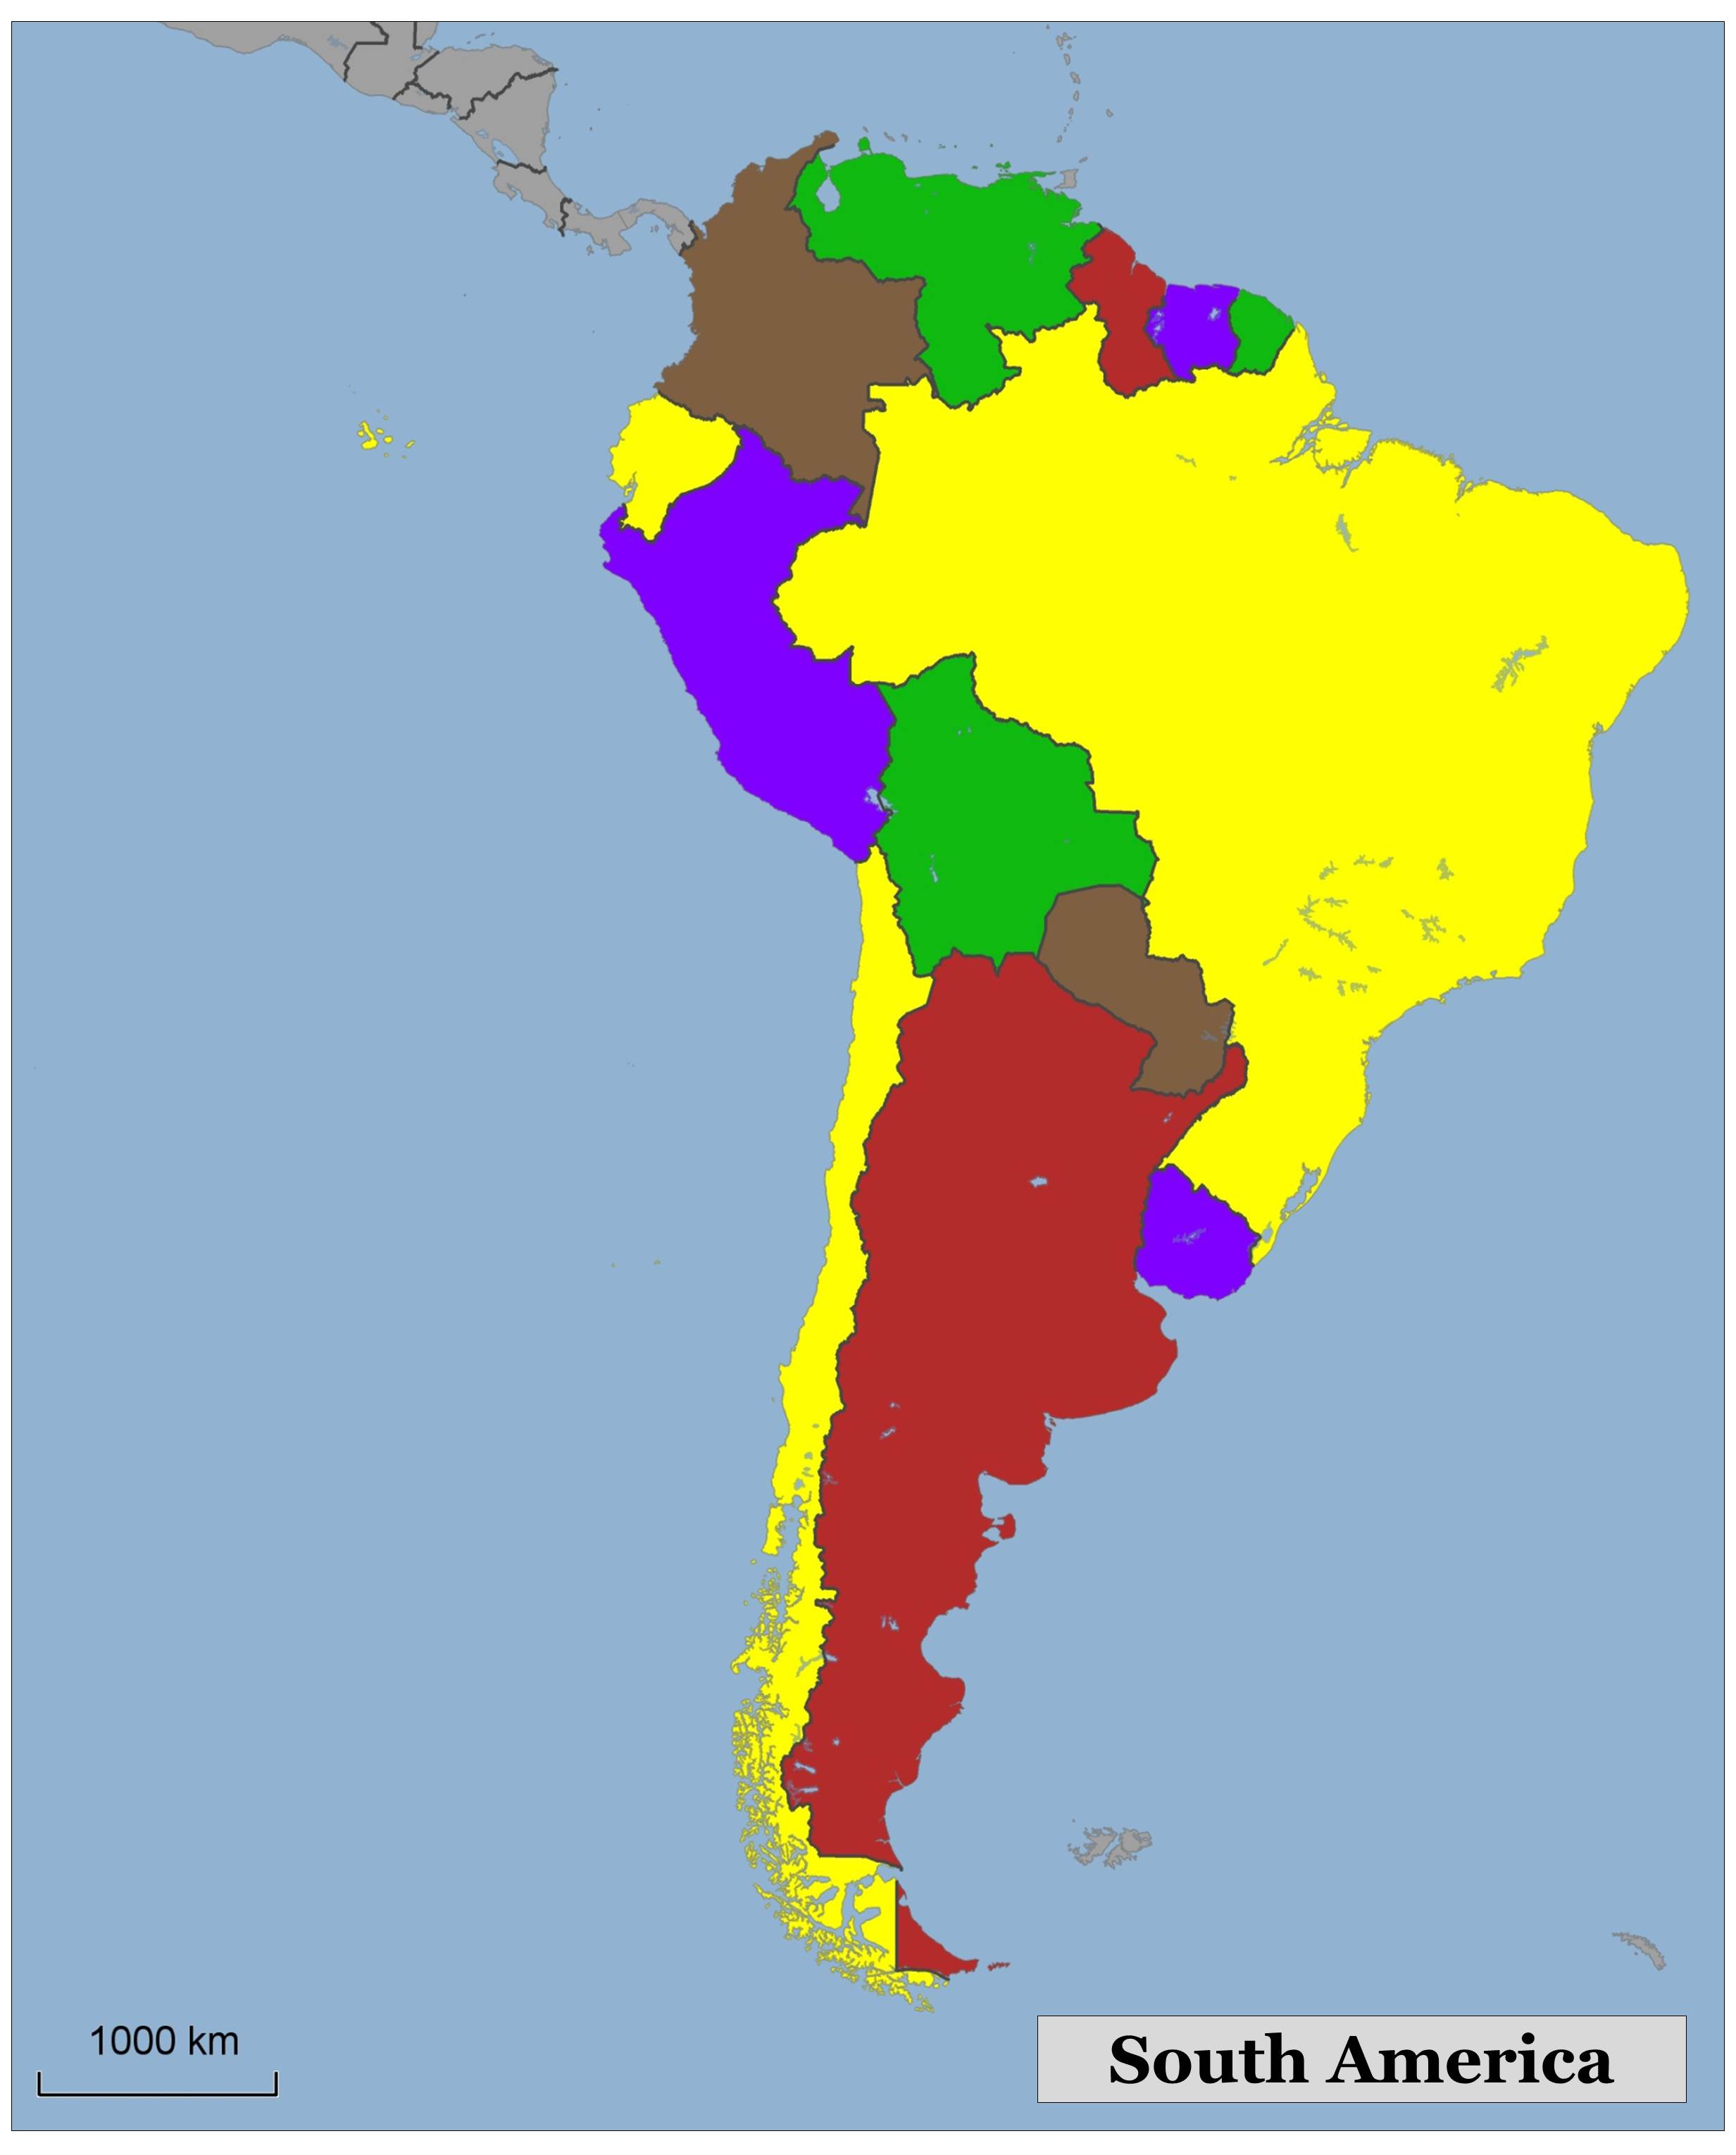 Blank color map of South America